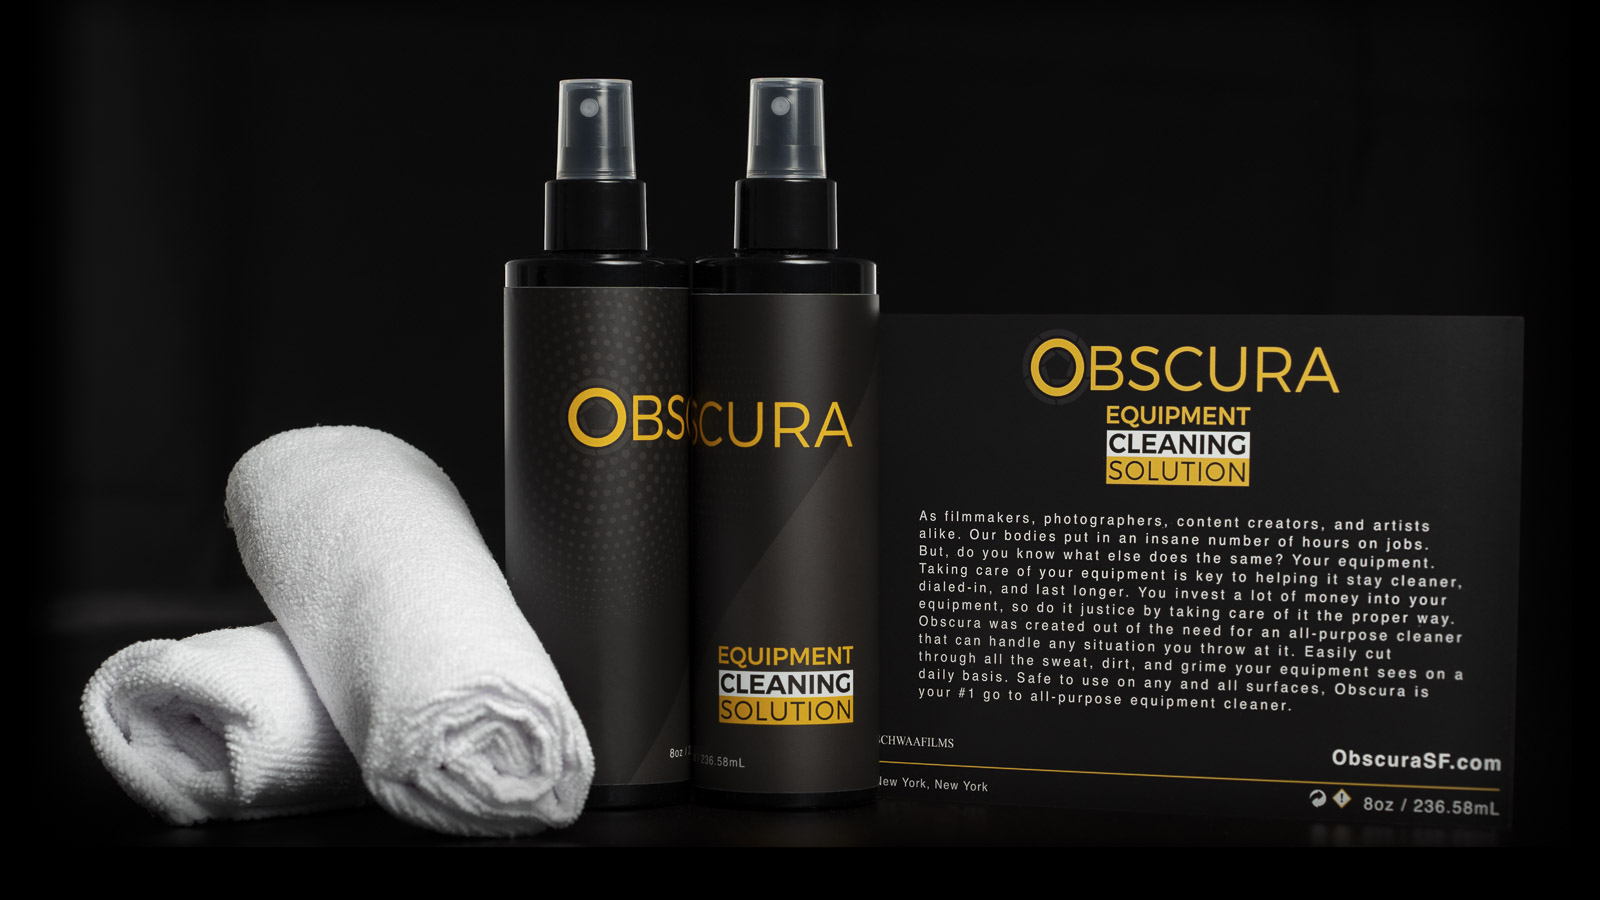 Obscura Equipment Cleaning Solution Cover